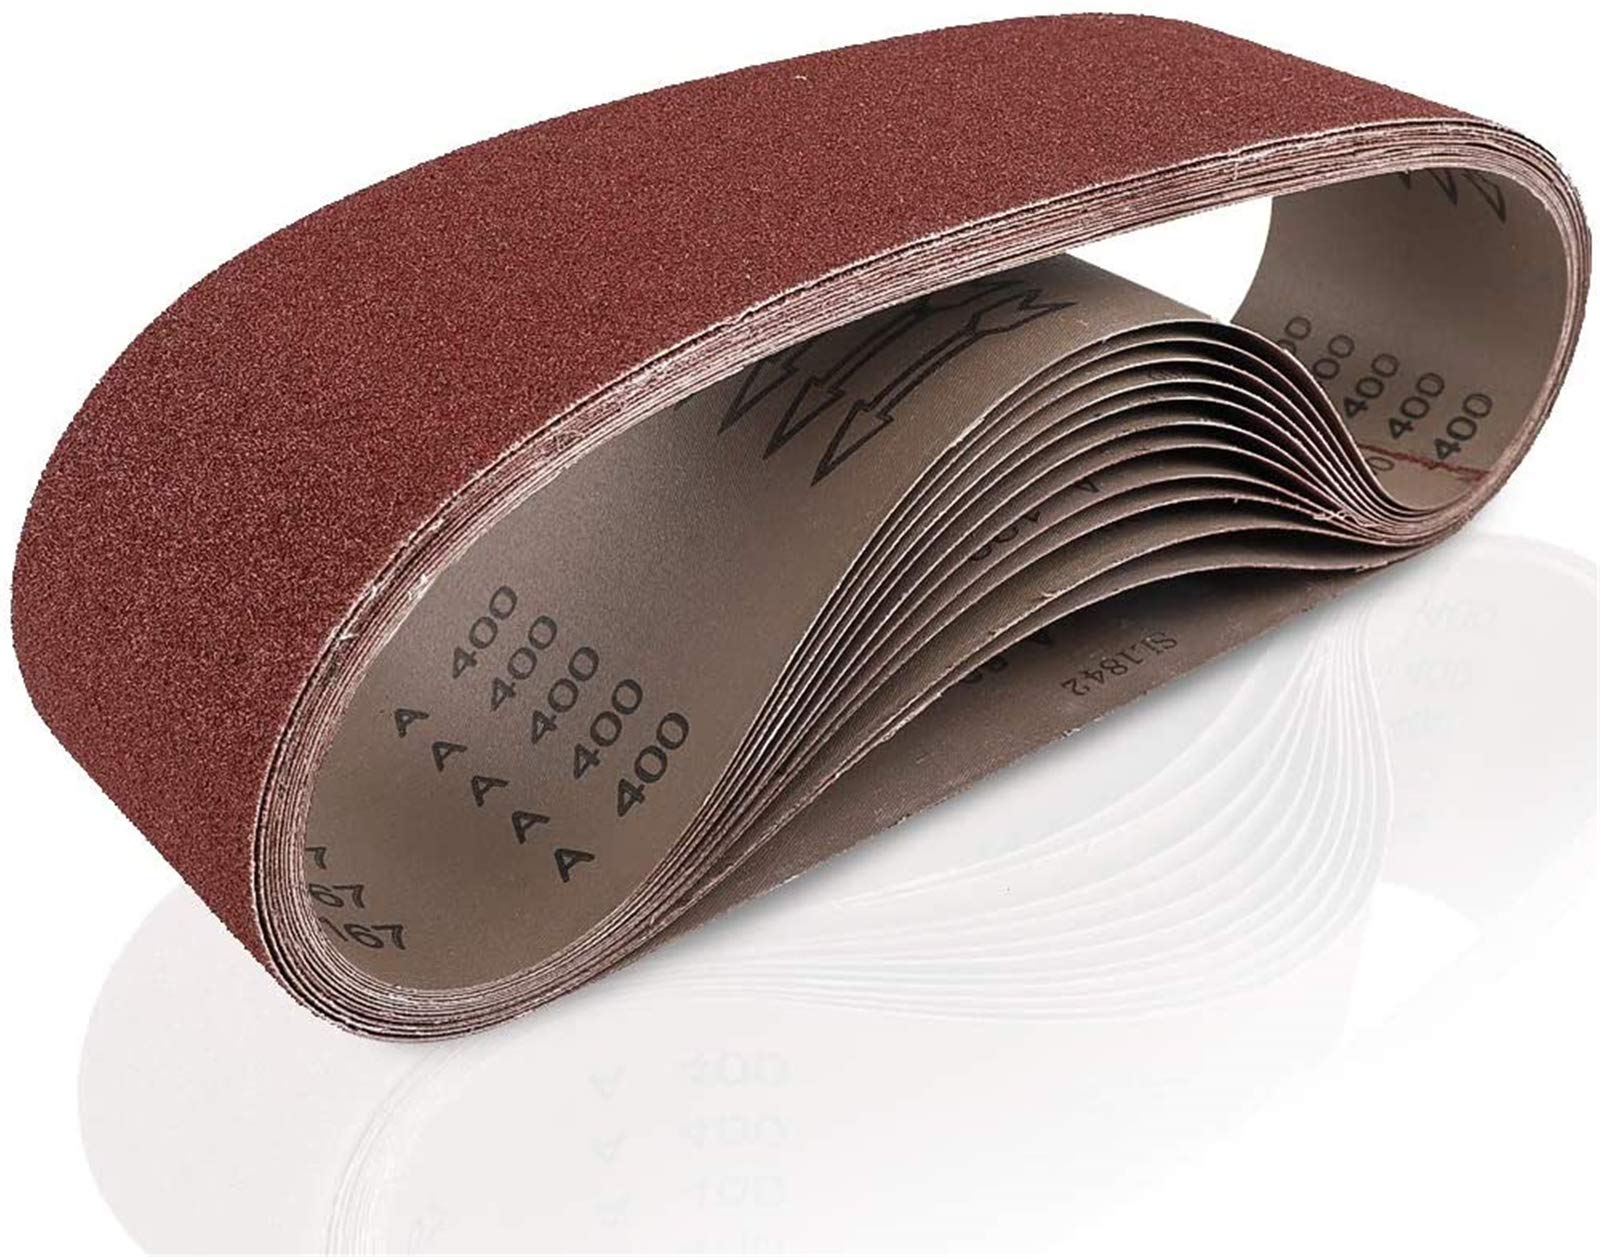 Coceca, 12 Pack 4x36 Inches (100x915mm) Sanding Belts (2 Each of 60 80 120 180 240 400 Grits) for Belt Sander